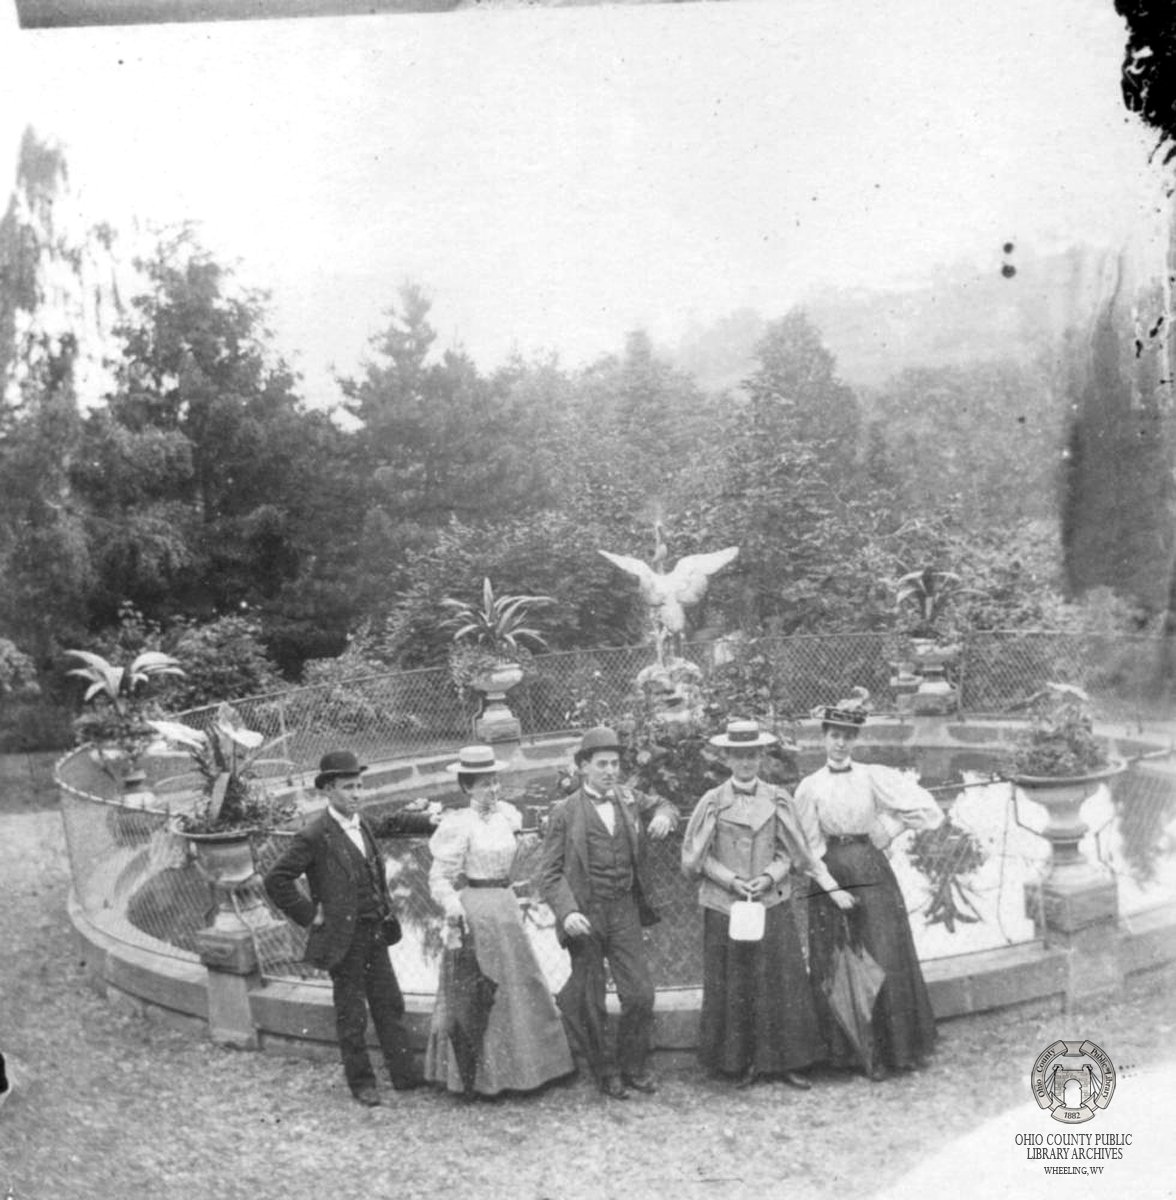 Visitors in front of the Wheeling Park Fountain, 1910. Image courtesy of Ohio County Public Library, Wheeling WV.